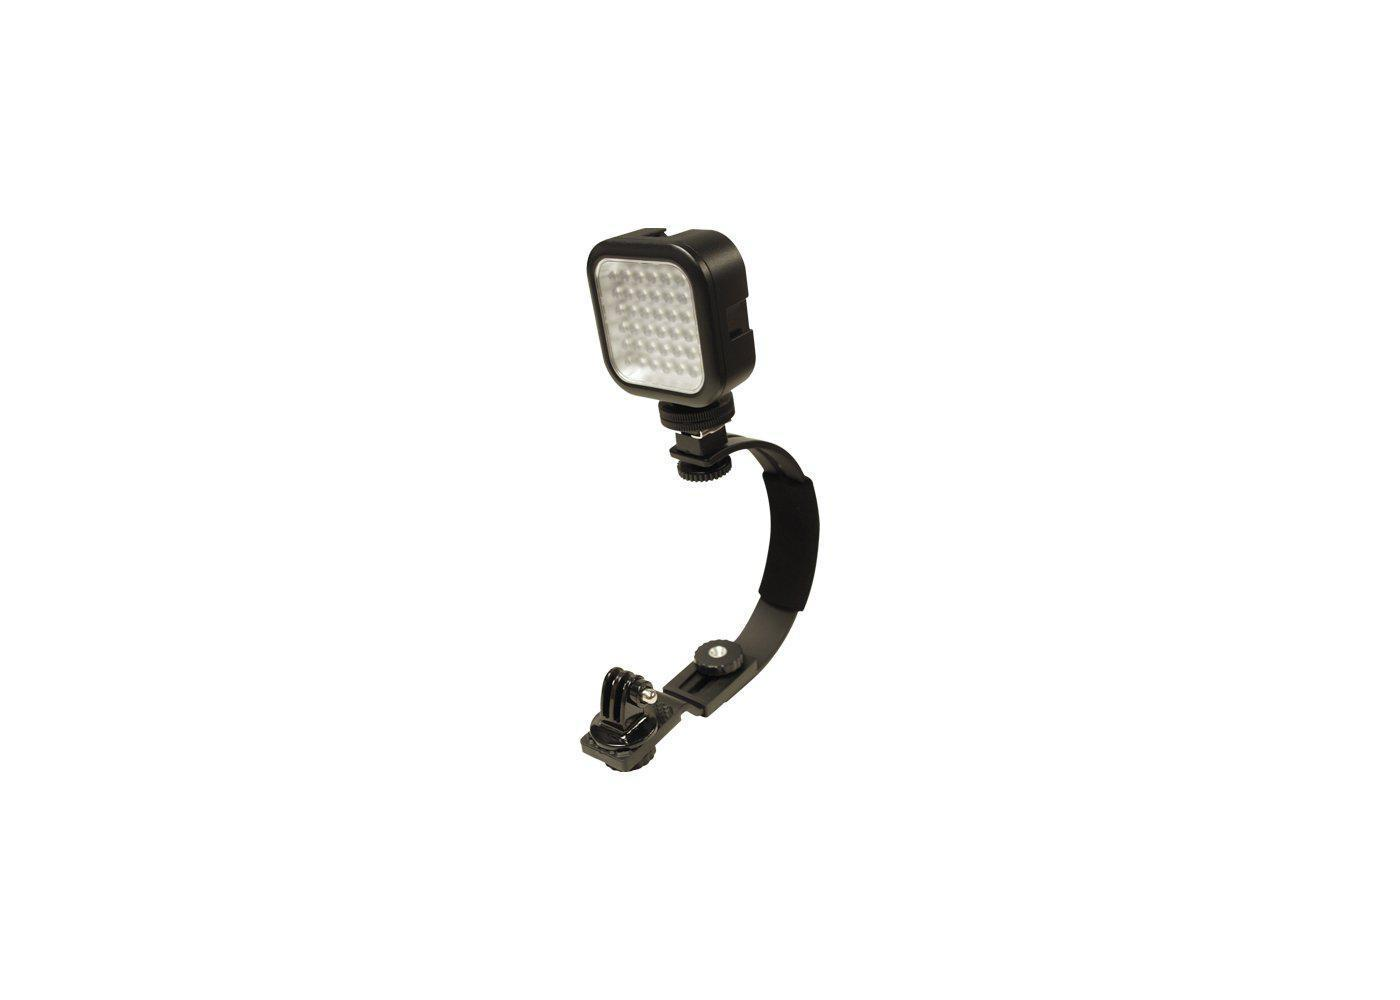 Camera Mount with LED Light and Case - cobra.com